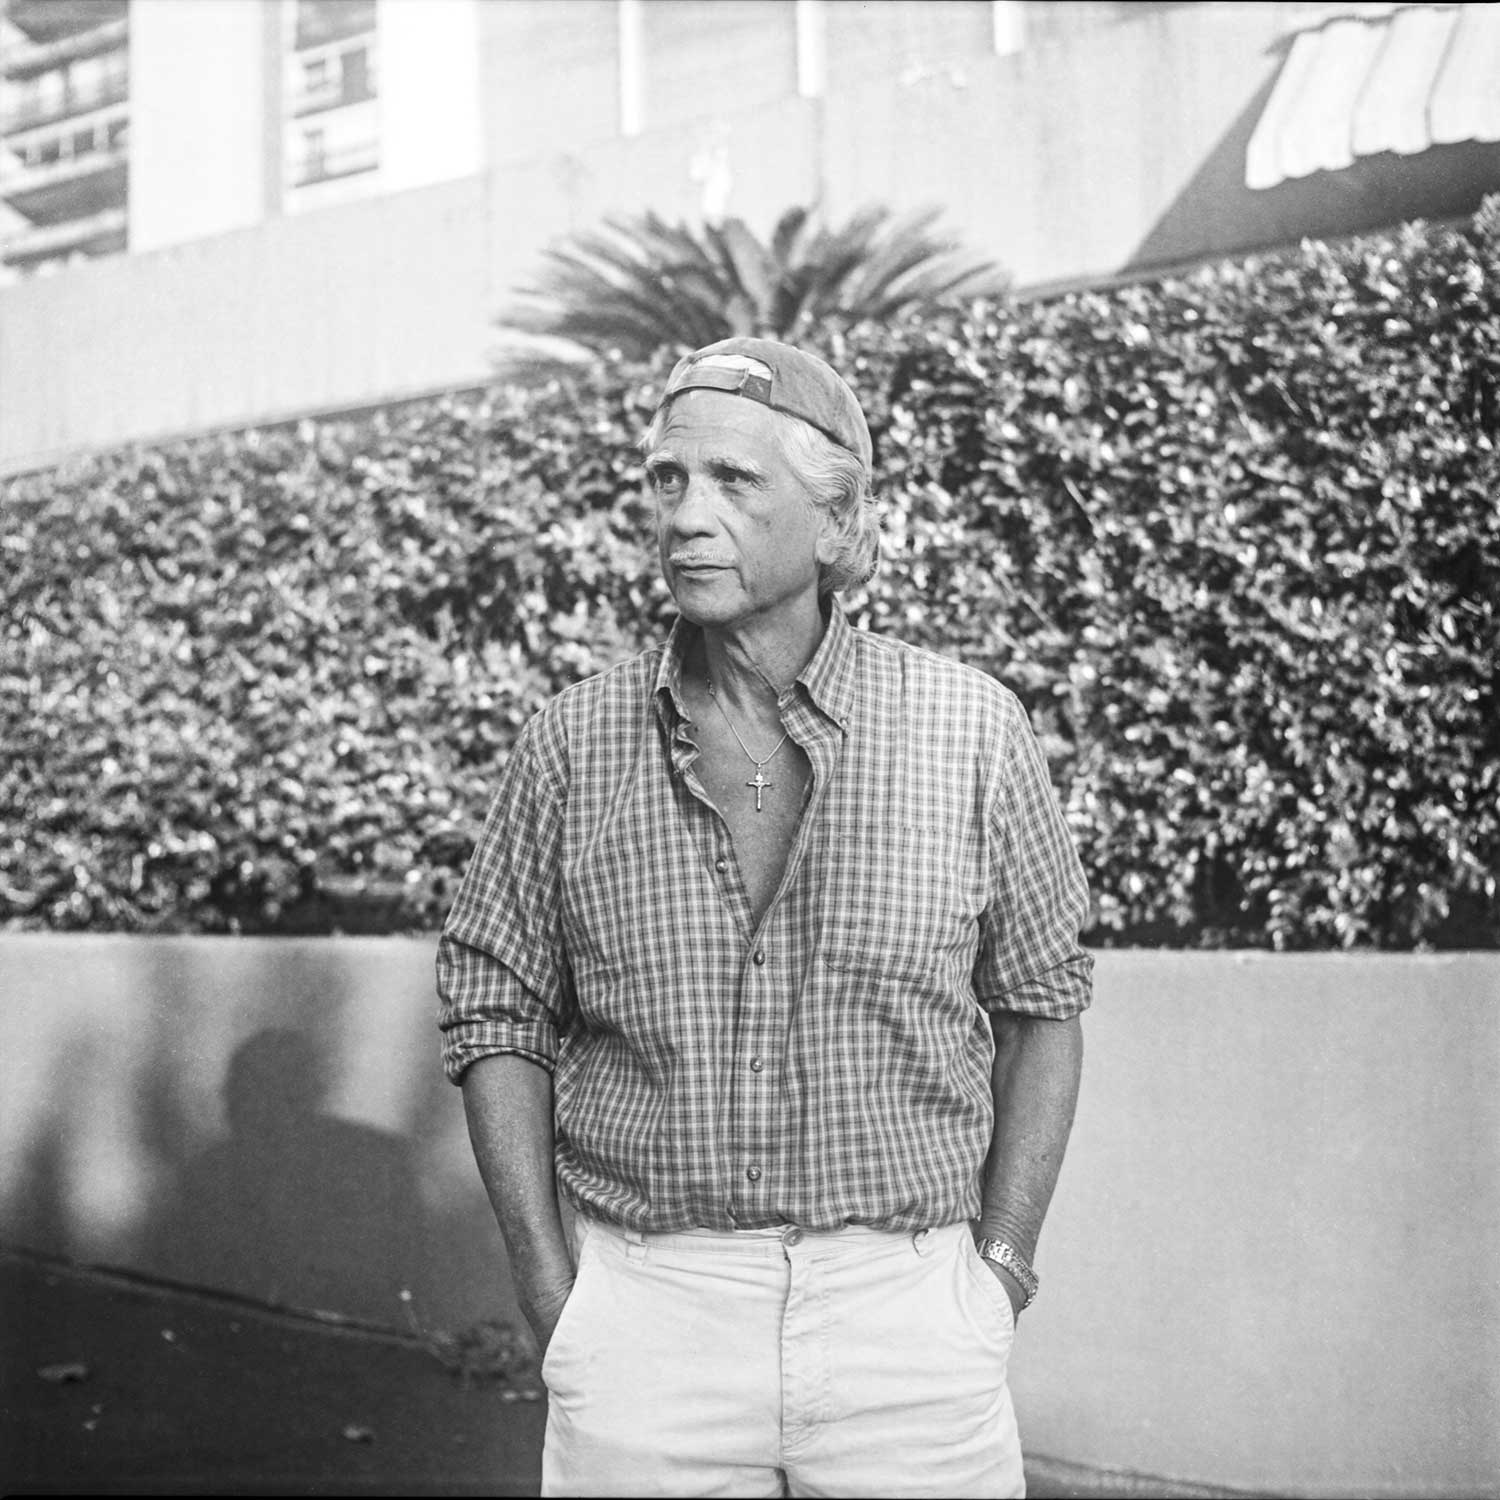 black and white photo of Kirk Thompson with hands in pockets of pants